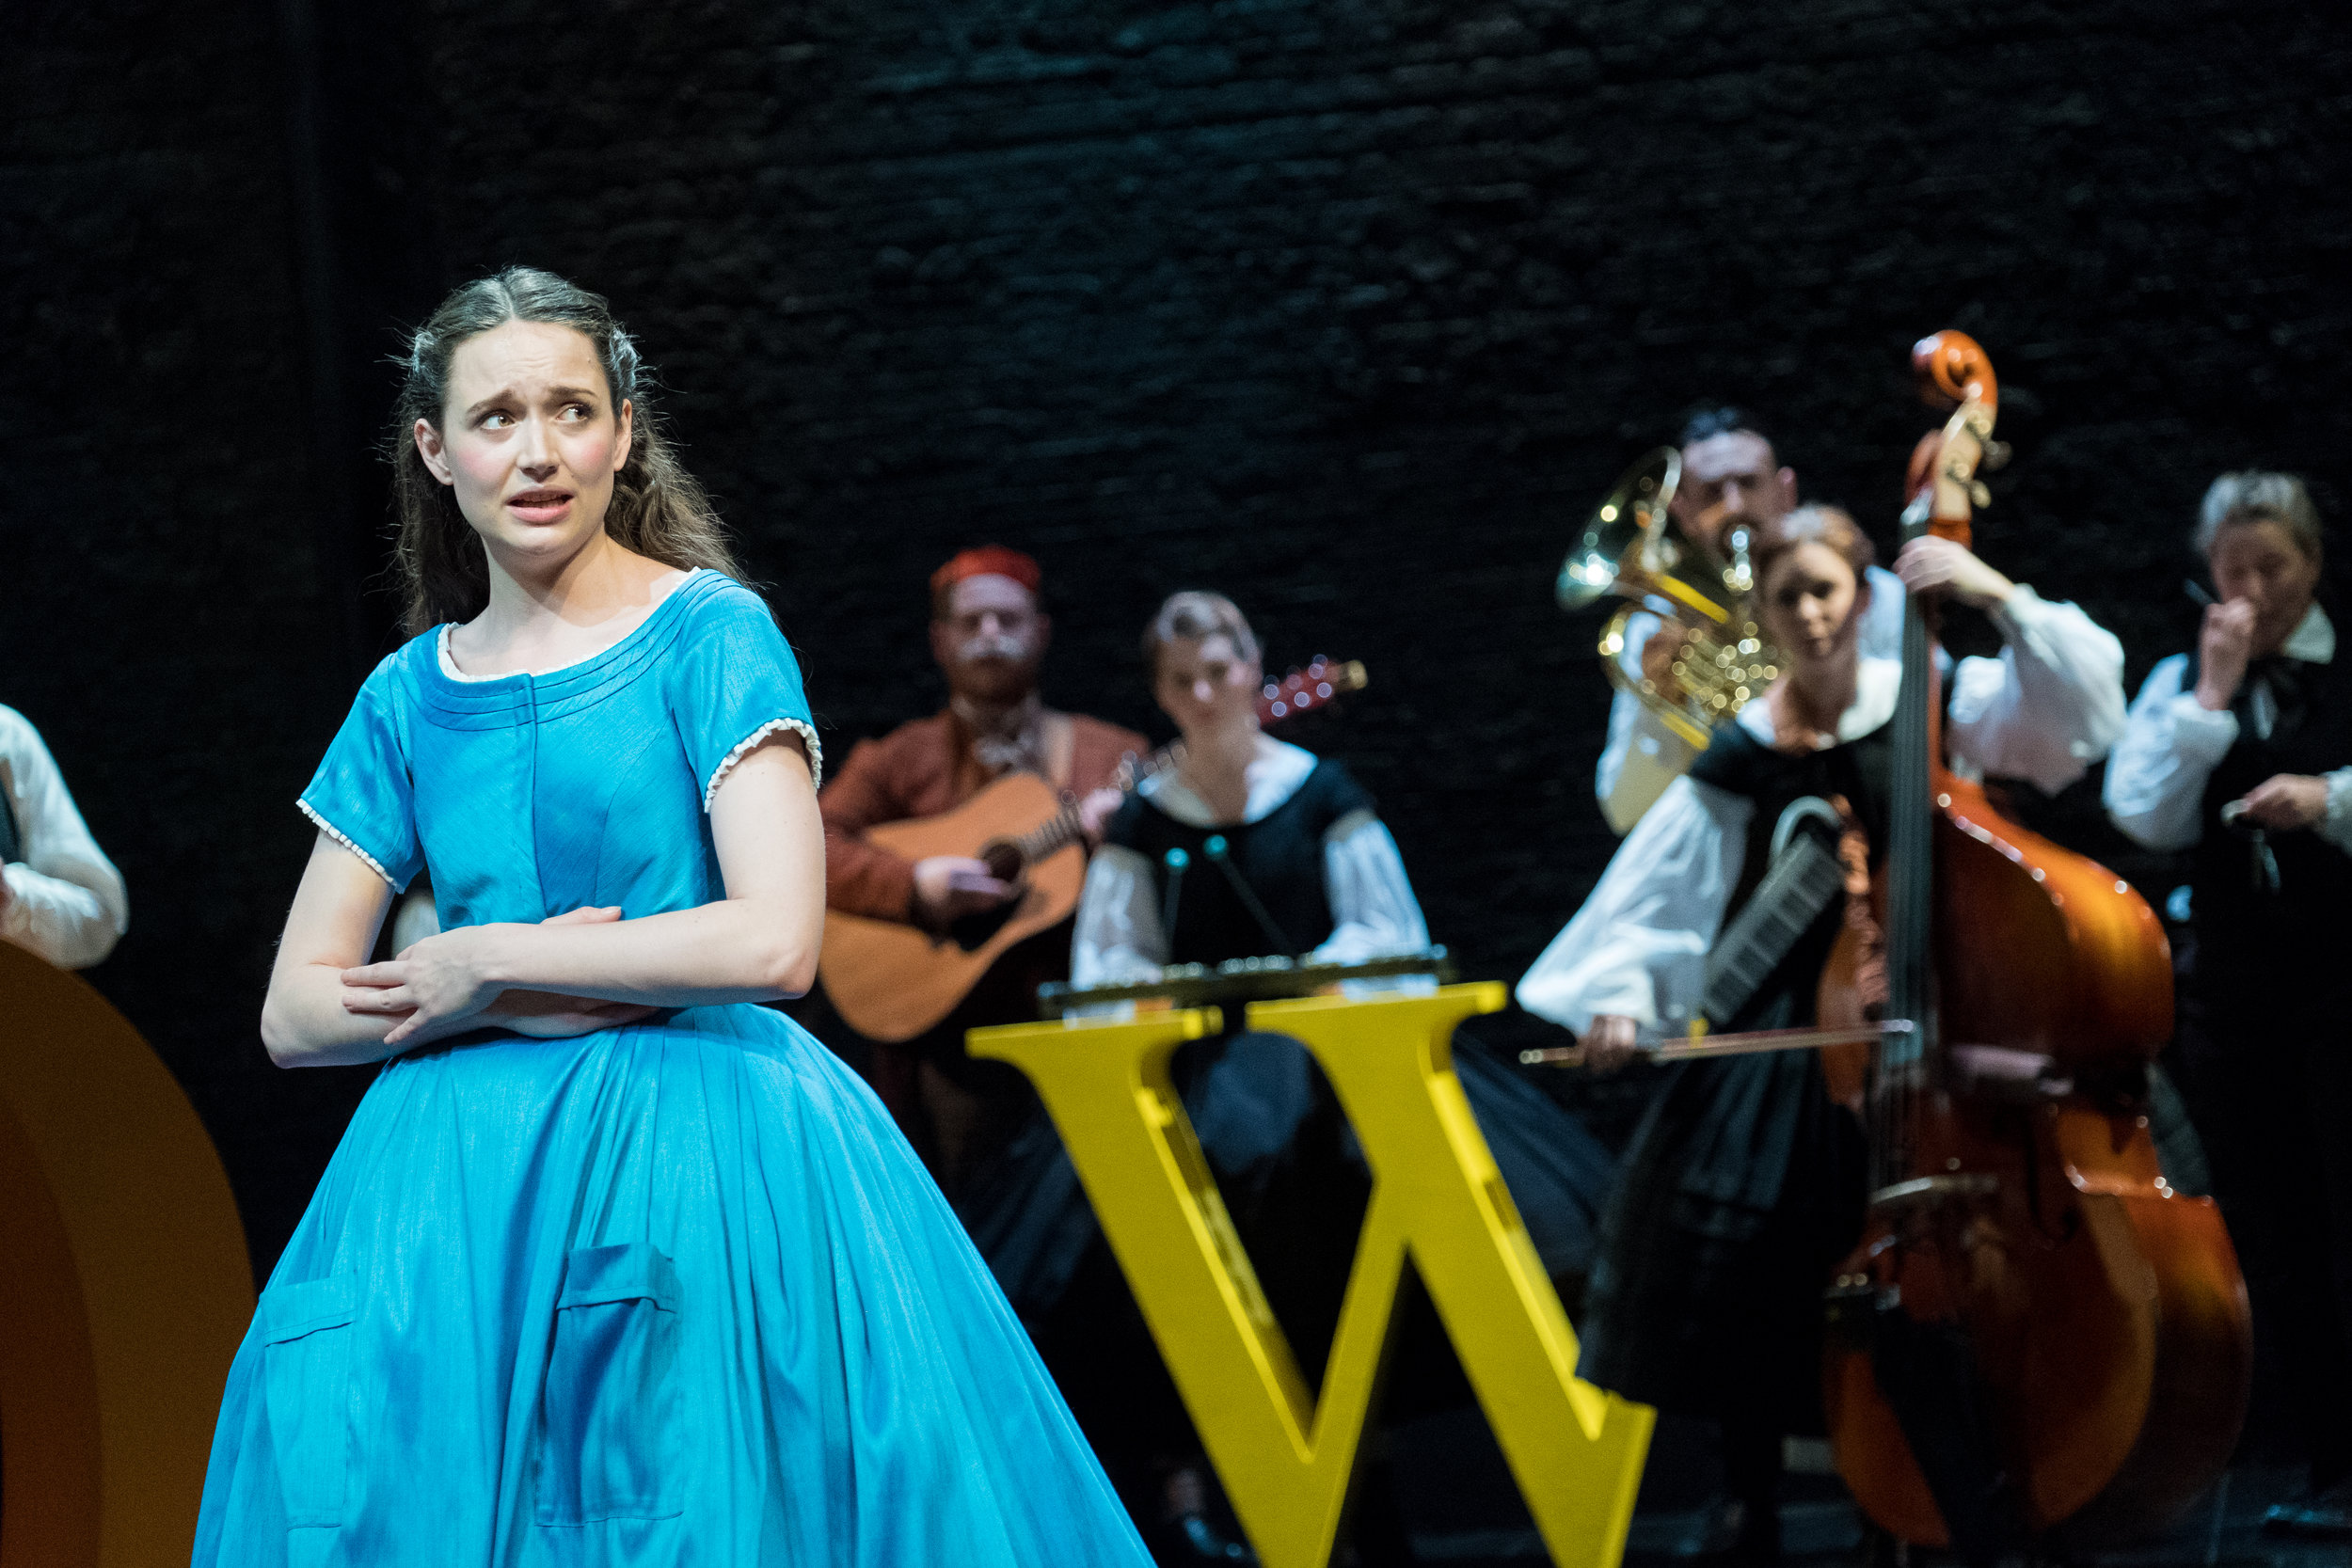 Rebecca Birch & cast in Alice in Wonderland, Storyhouse, composed by Jude Obermüller (photo by Mark McNulty)